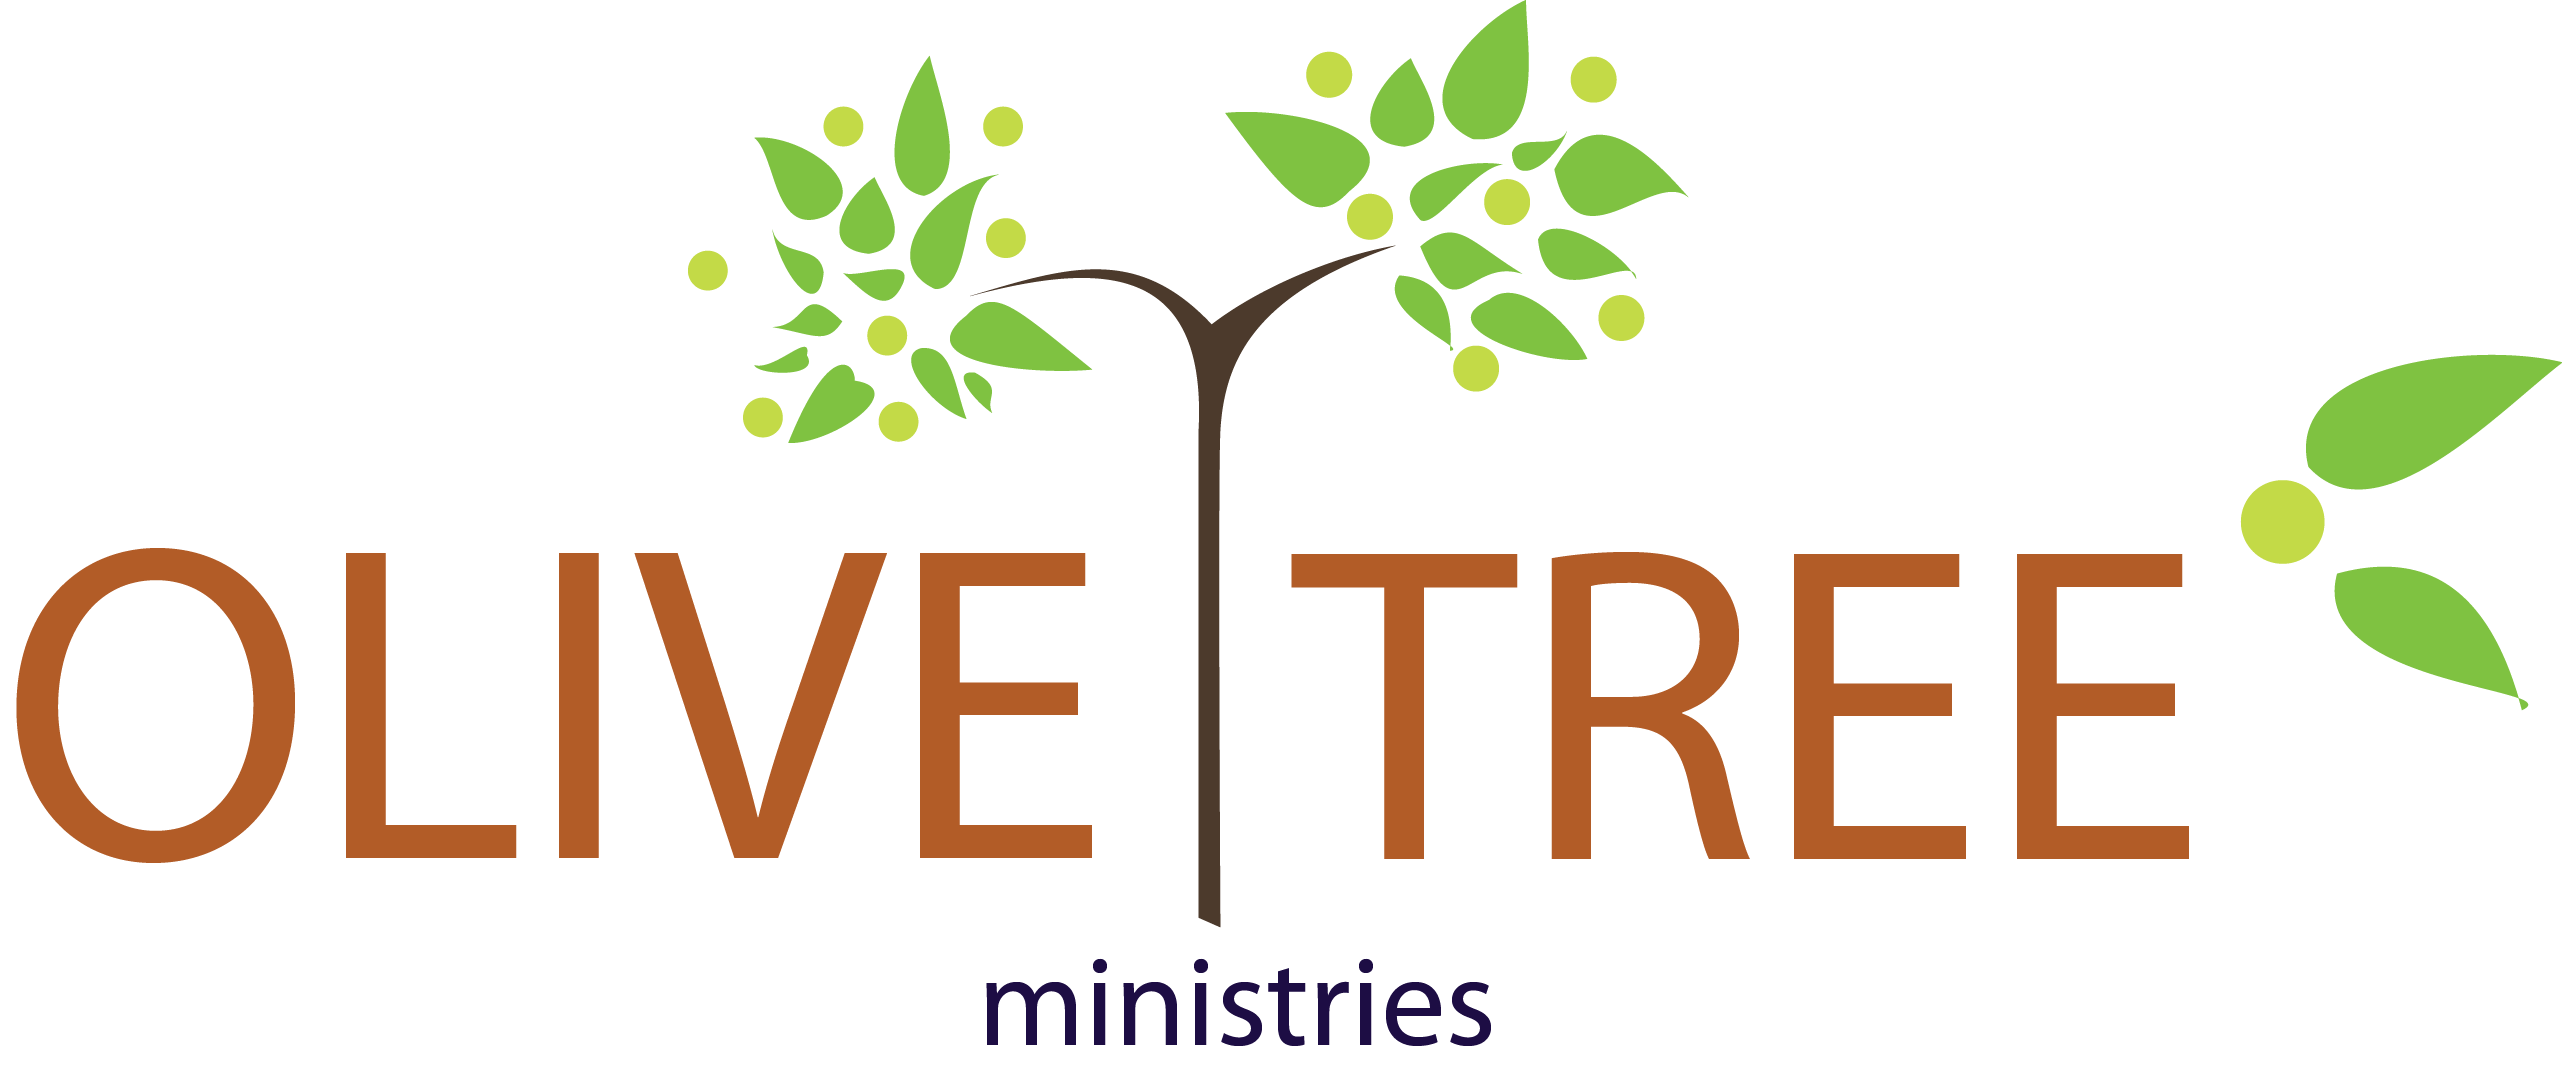 Olive tree clipart free clipart freeuse download Welcome to Olive Tree | Olive Tree Ministries clipart freeuse download